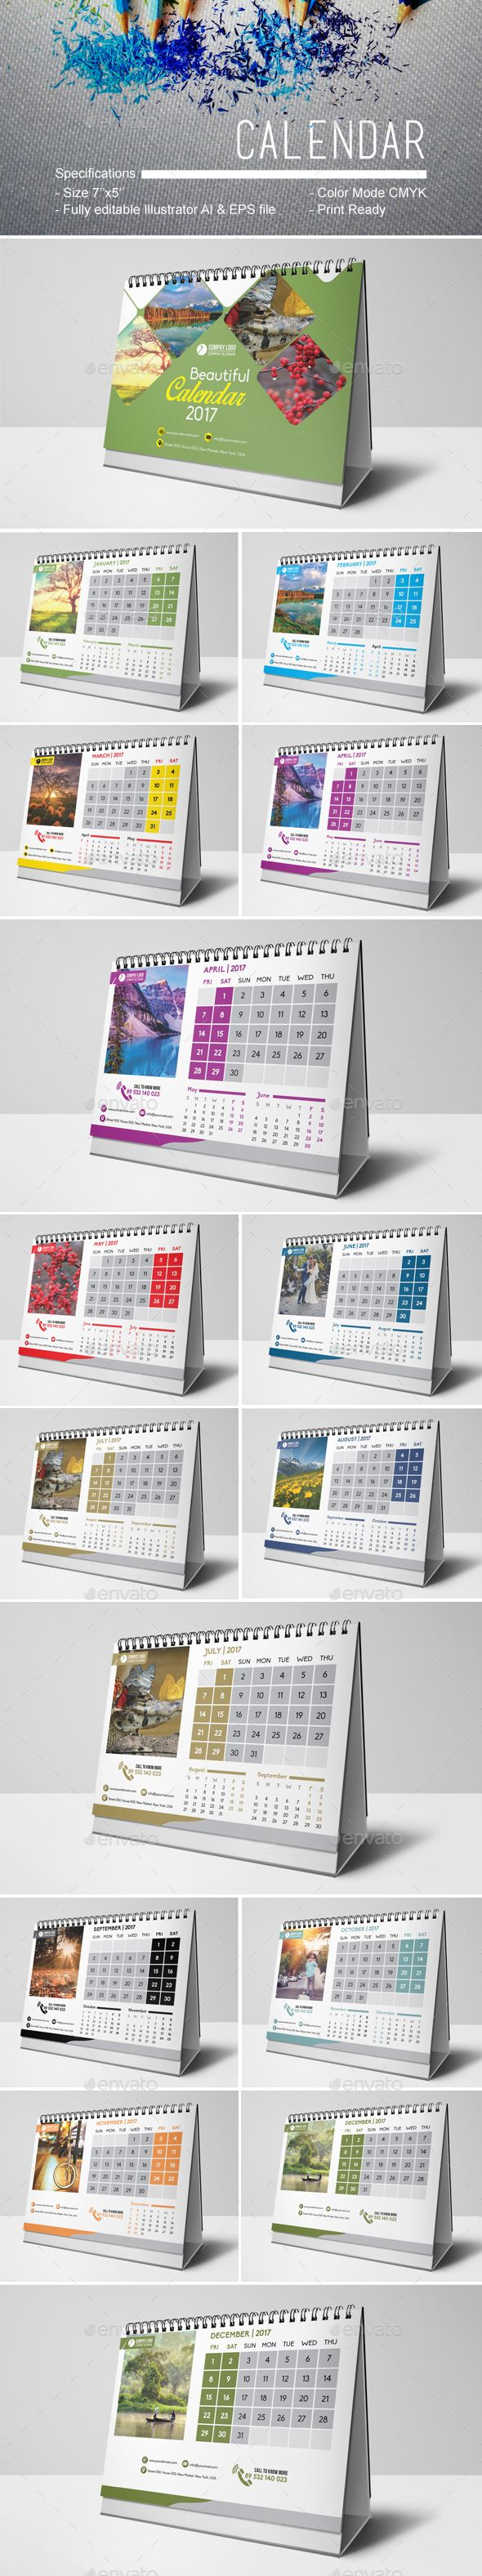 343 best images about calendar templates on pinterest creative walls 2015 calendar and wall. Black Bedroom Furniture Sets. Home Design Ideas